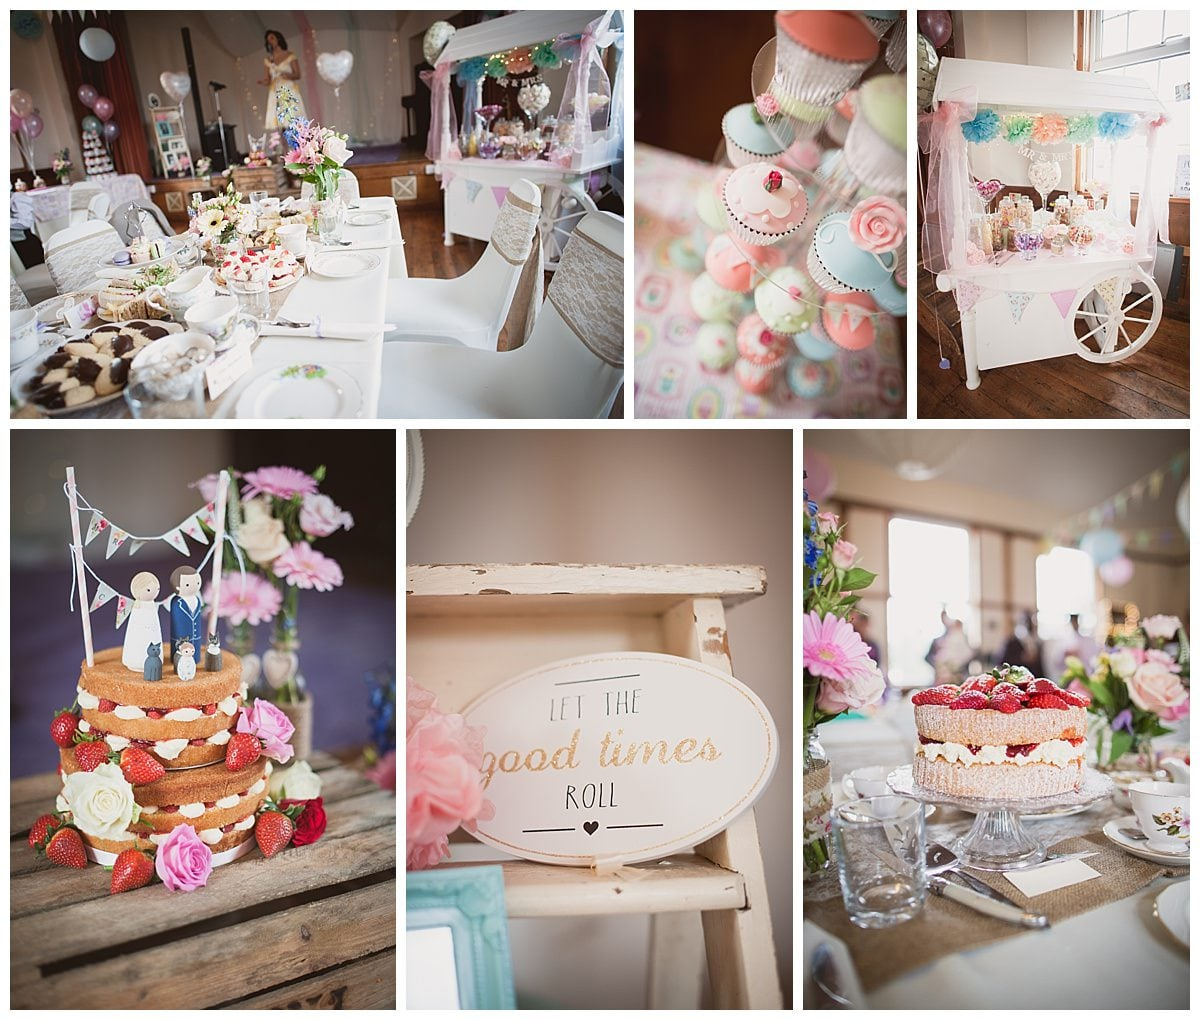 Photographs of vintage afternoon tea wedding reception at Emery Down Village Hall Wedding